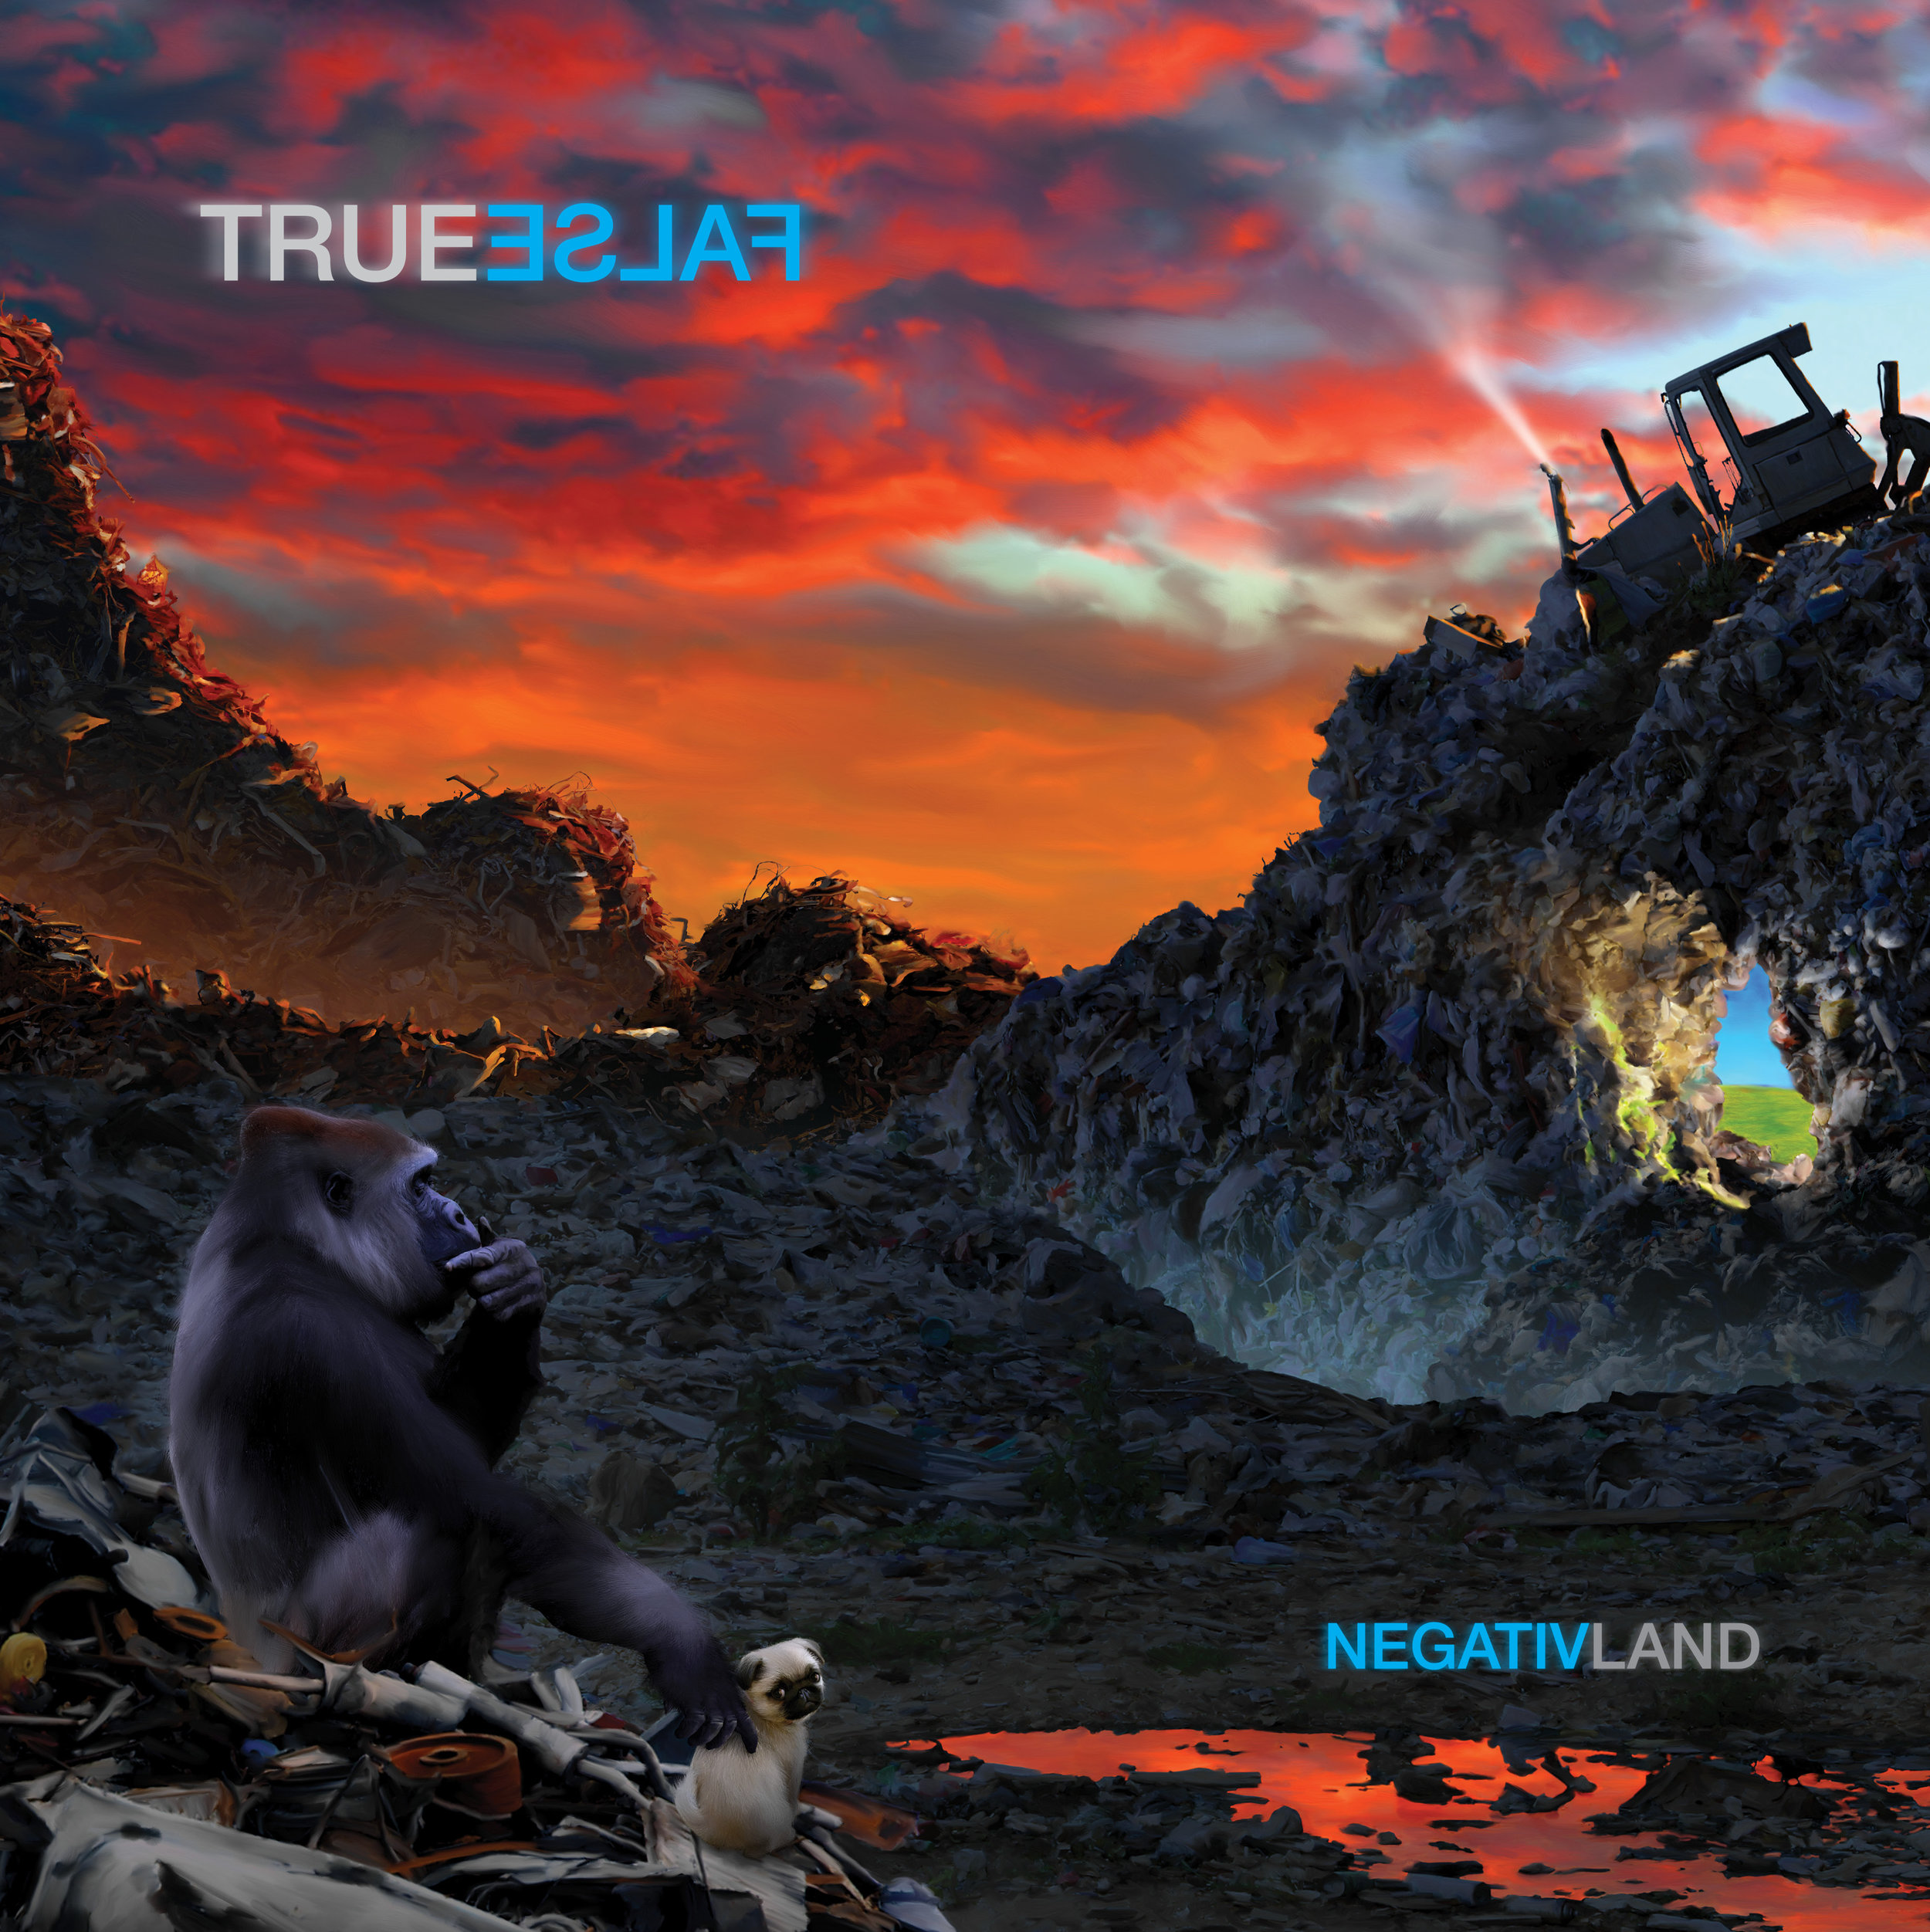 """And what is """"True False""""? - """"True False"""" is their 13th studio album and Negativland's 2019 return to all original music that you could mistake for actual songs, albeit ones being sung by dozens of sampled vocalists who have never met. The first of two interconnected double albums, """"True False"""" tackles concerns that will be familiar to any surviving fans of the band: our nervous systems, our realities, and the evolving forms of media that inevitably insert themselves between us. Shootings, bees, the right's rules for radicals, climate control, dogs pretending to be children, the oil we eat, capitalism, and the right of every American to believe whatever they want to believe ….all are explored. It's the first Negativland album to come with a lyric sheet, and is a reminder that we need more than just one memory before we can safely tell anyone else that this is not normal. Juxtaposing Occupy mic checks with US militia rallies, FOX news hosts and ecoterrorists, and your own sanity with the home viewing habits of Negativland's lead vocalist, the Weatherman, as we witness the entrenched political beliefs of left and right cleanly switching sides in under one generation, when you put the word 'True' next to the word 'False', a broader reality reveals itself."""